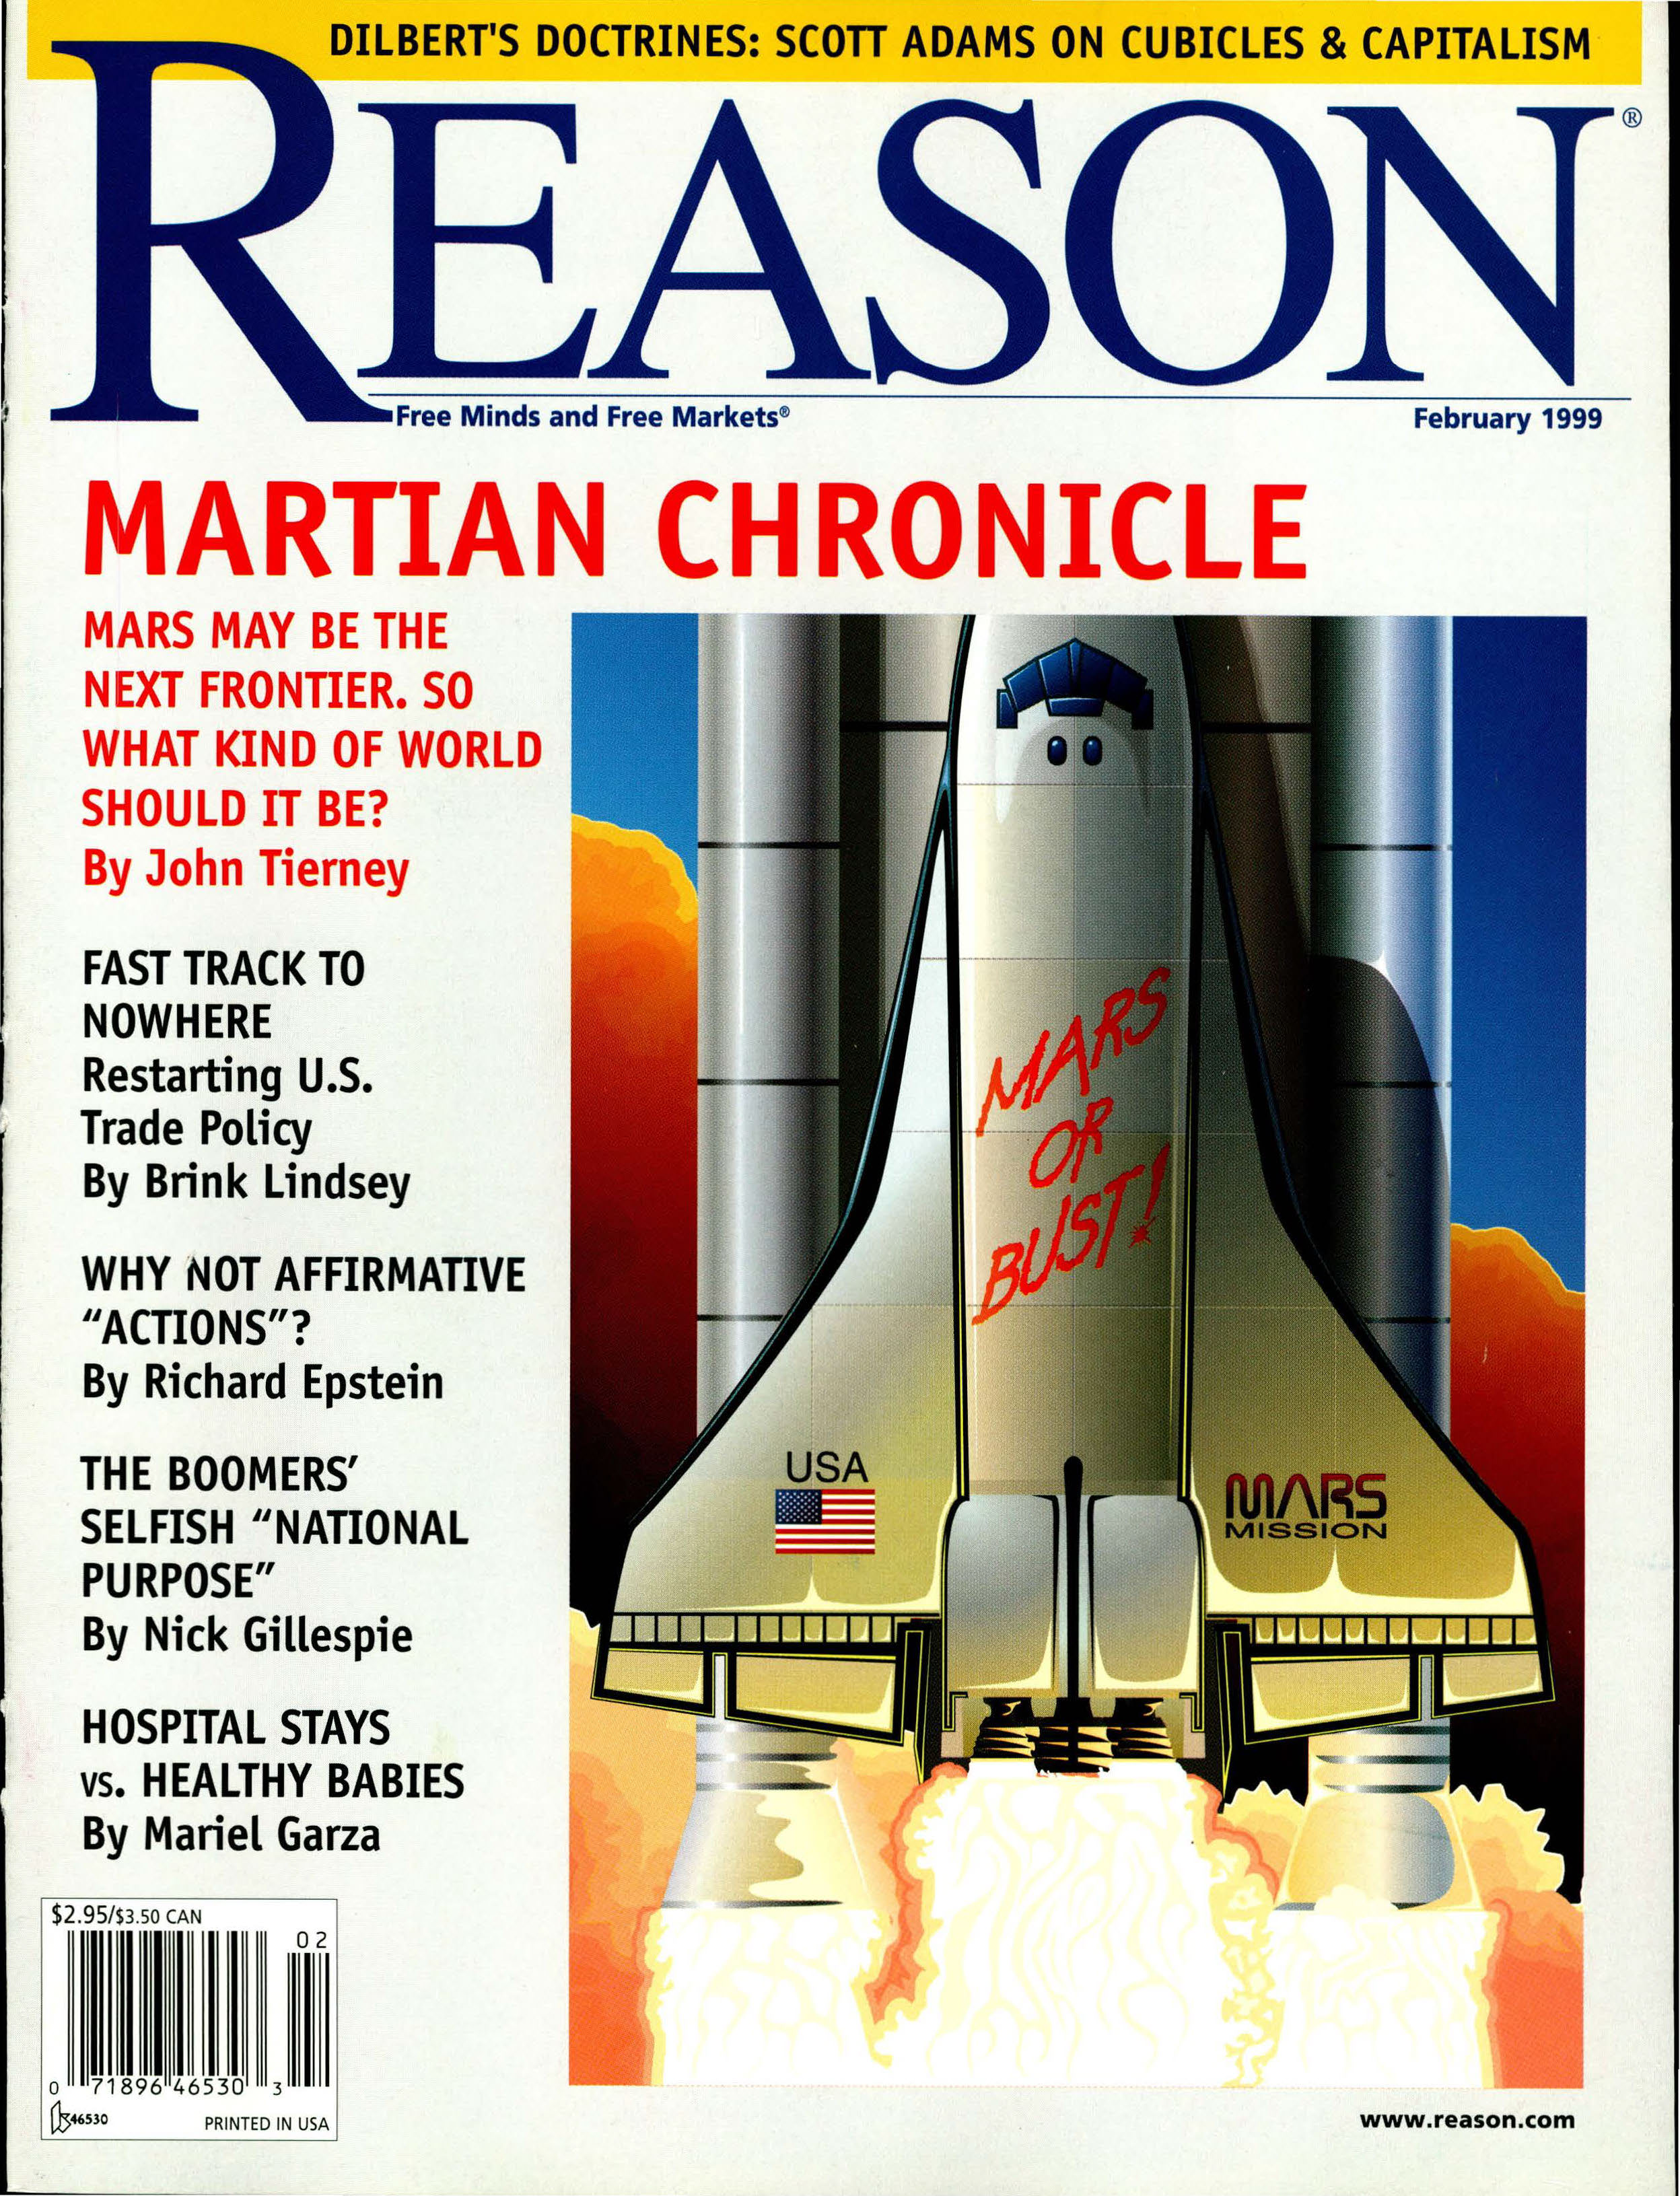 Reason Magazine, February 1999 cover image